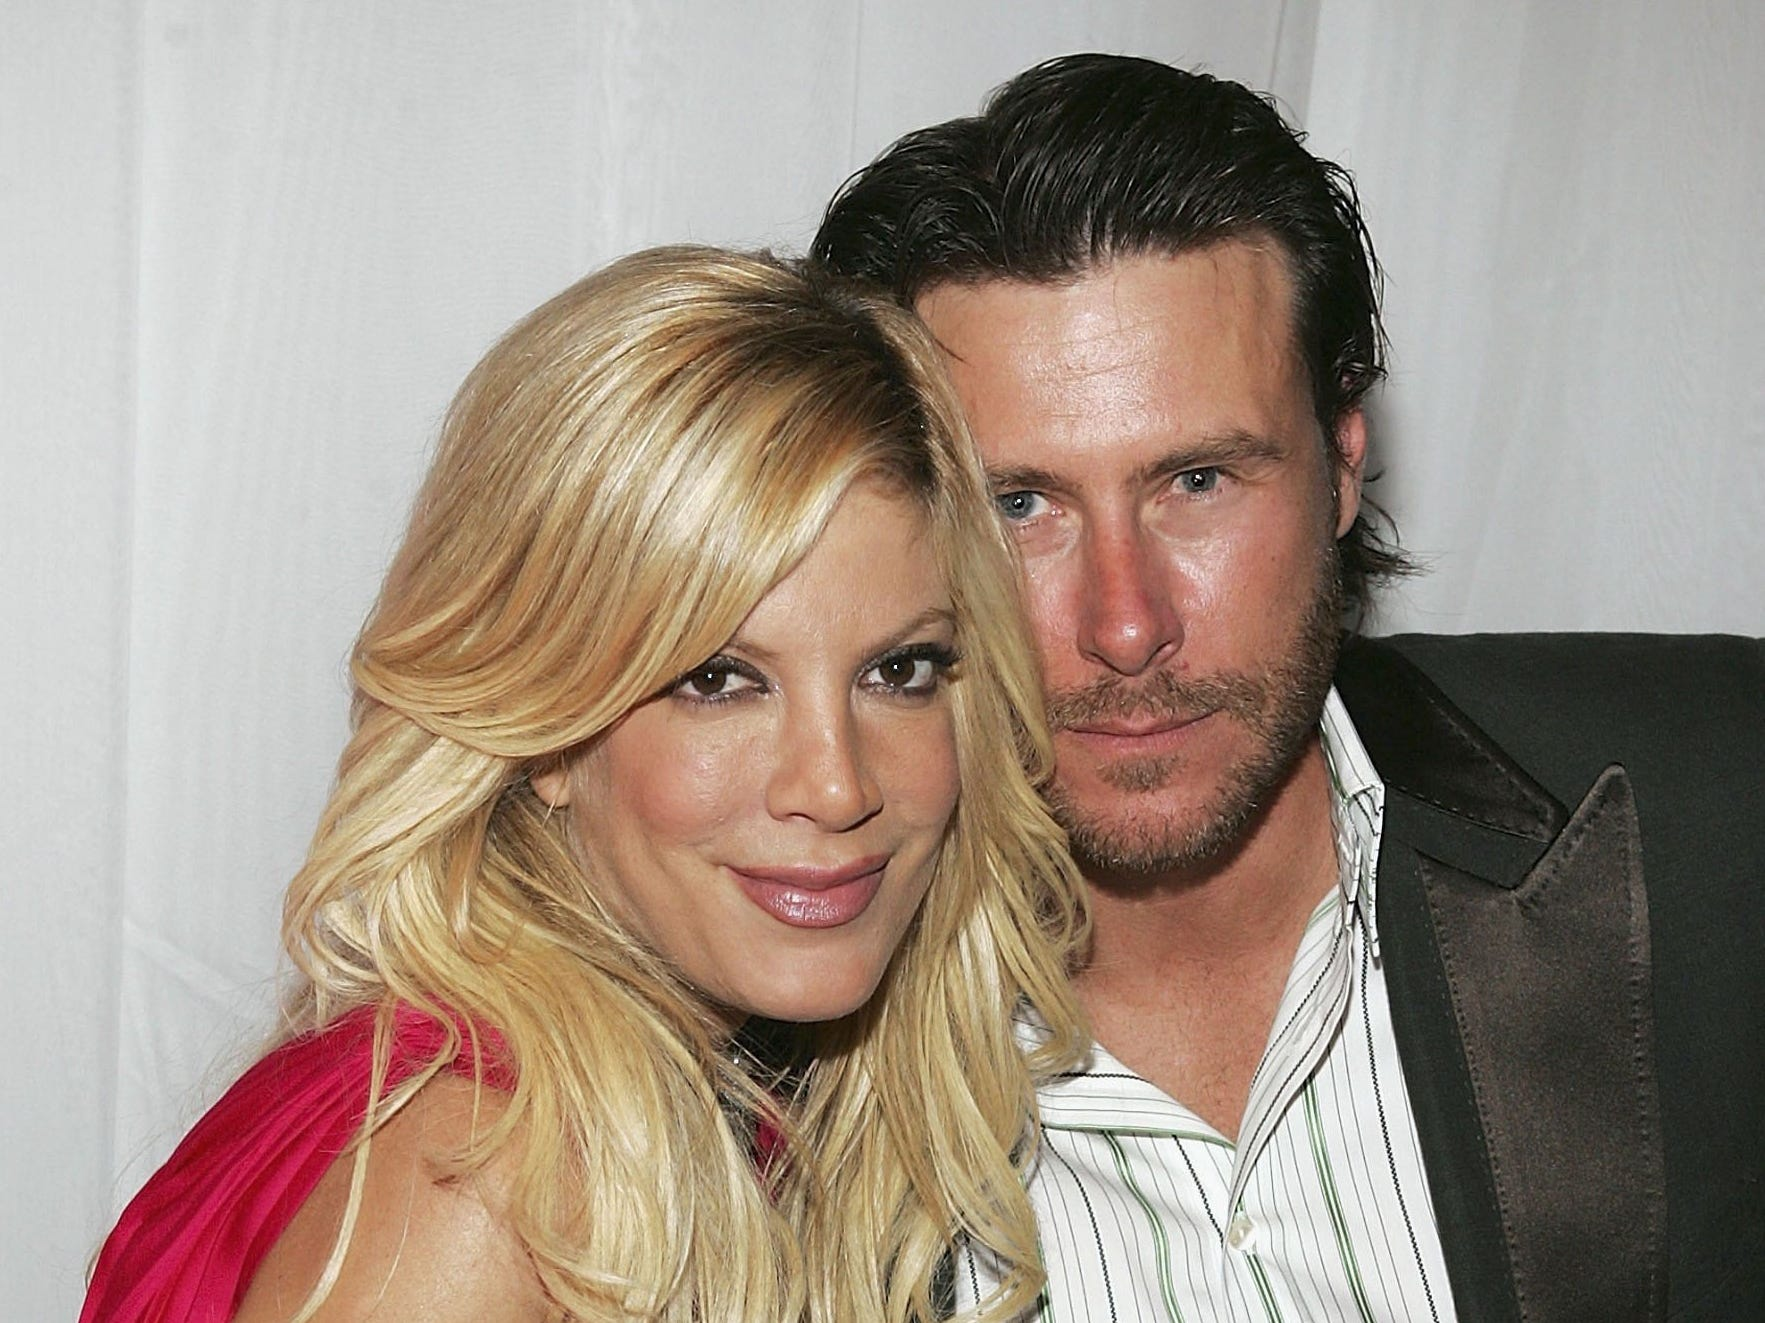 After a two-year marriage to actor Charlie Shanian, Spelling wed Dean McDermott in May 2006.